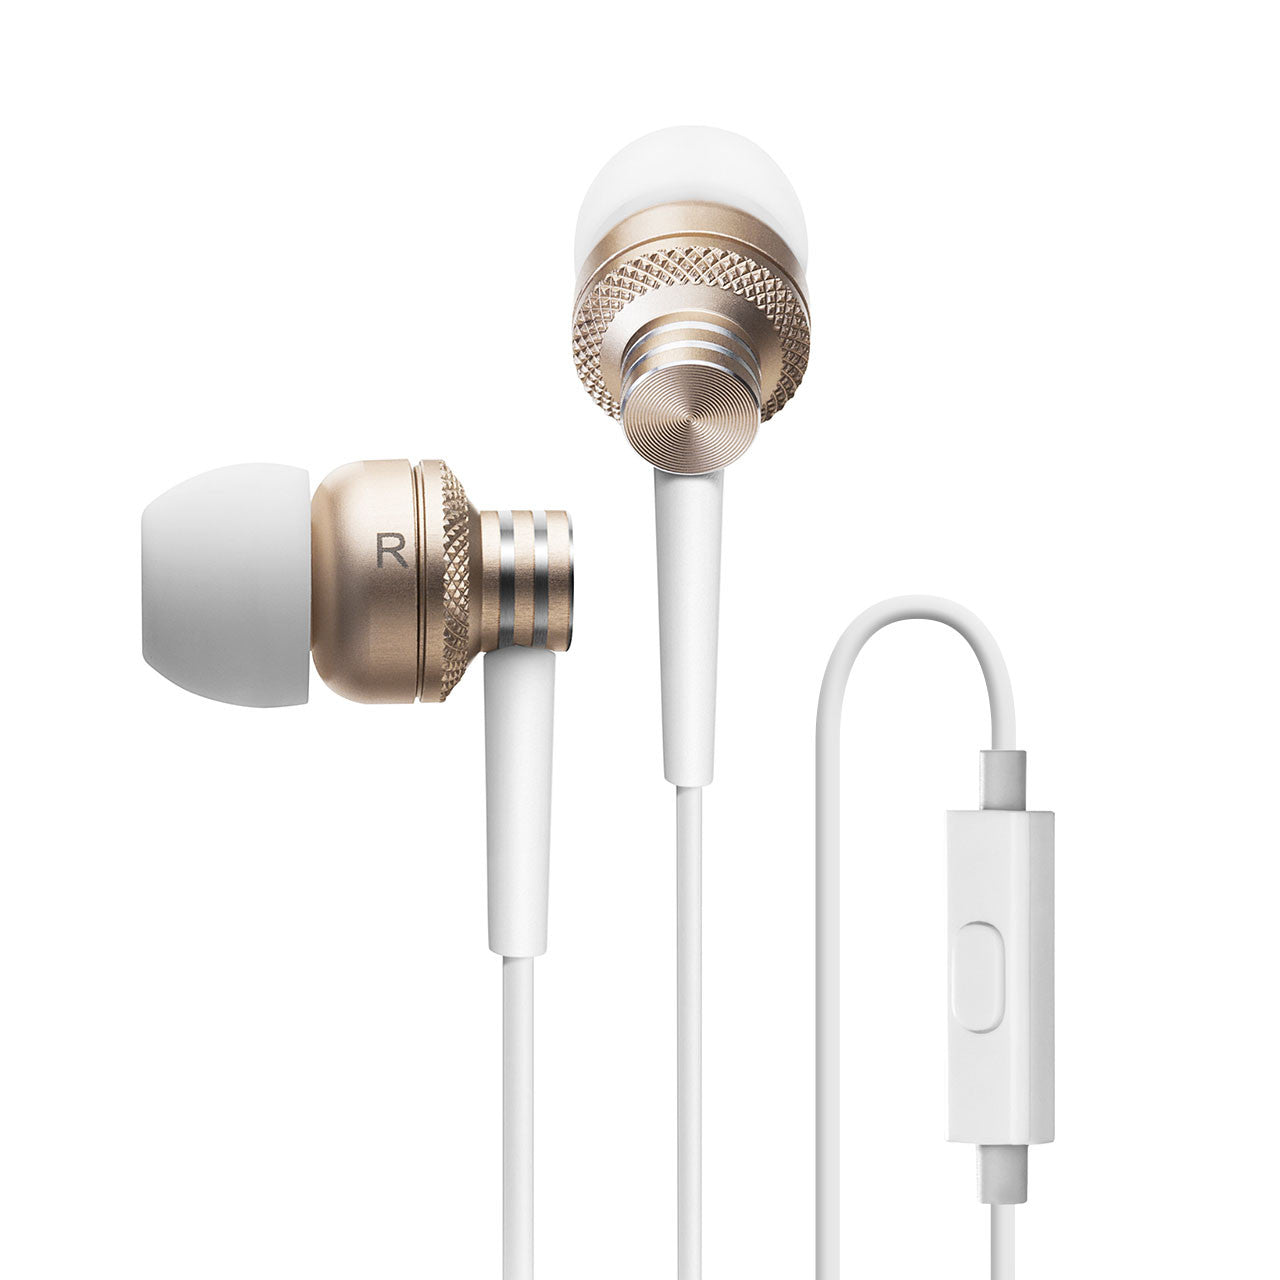 Edifier P270 In-ear Headset